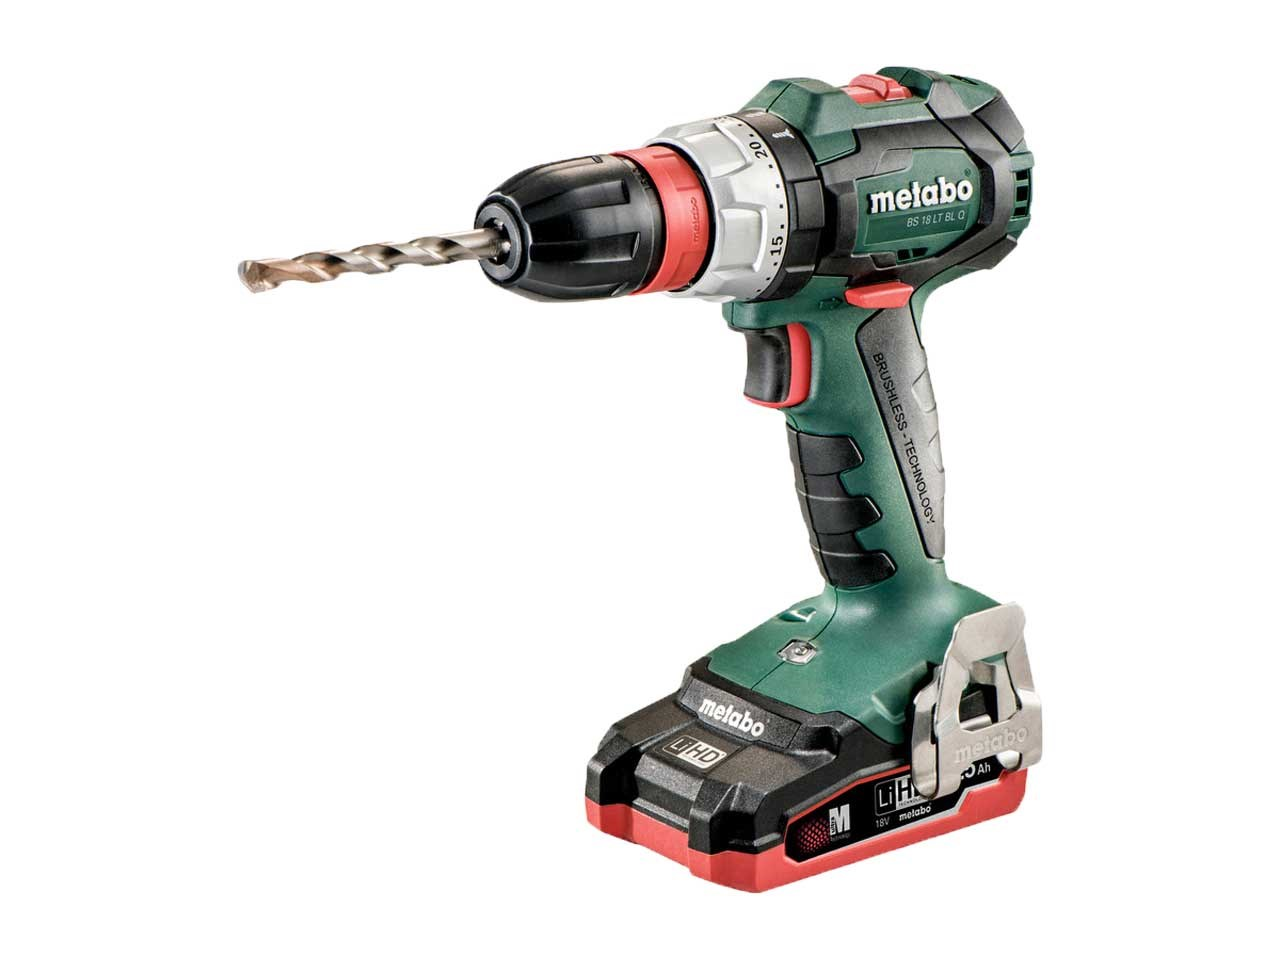 metabo sb 18 lt review